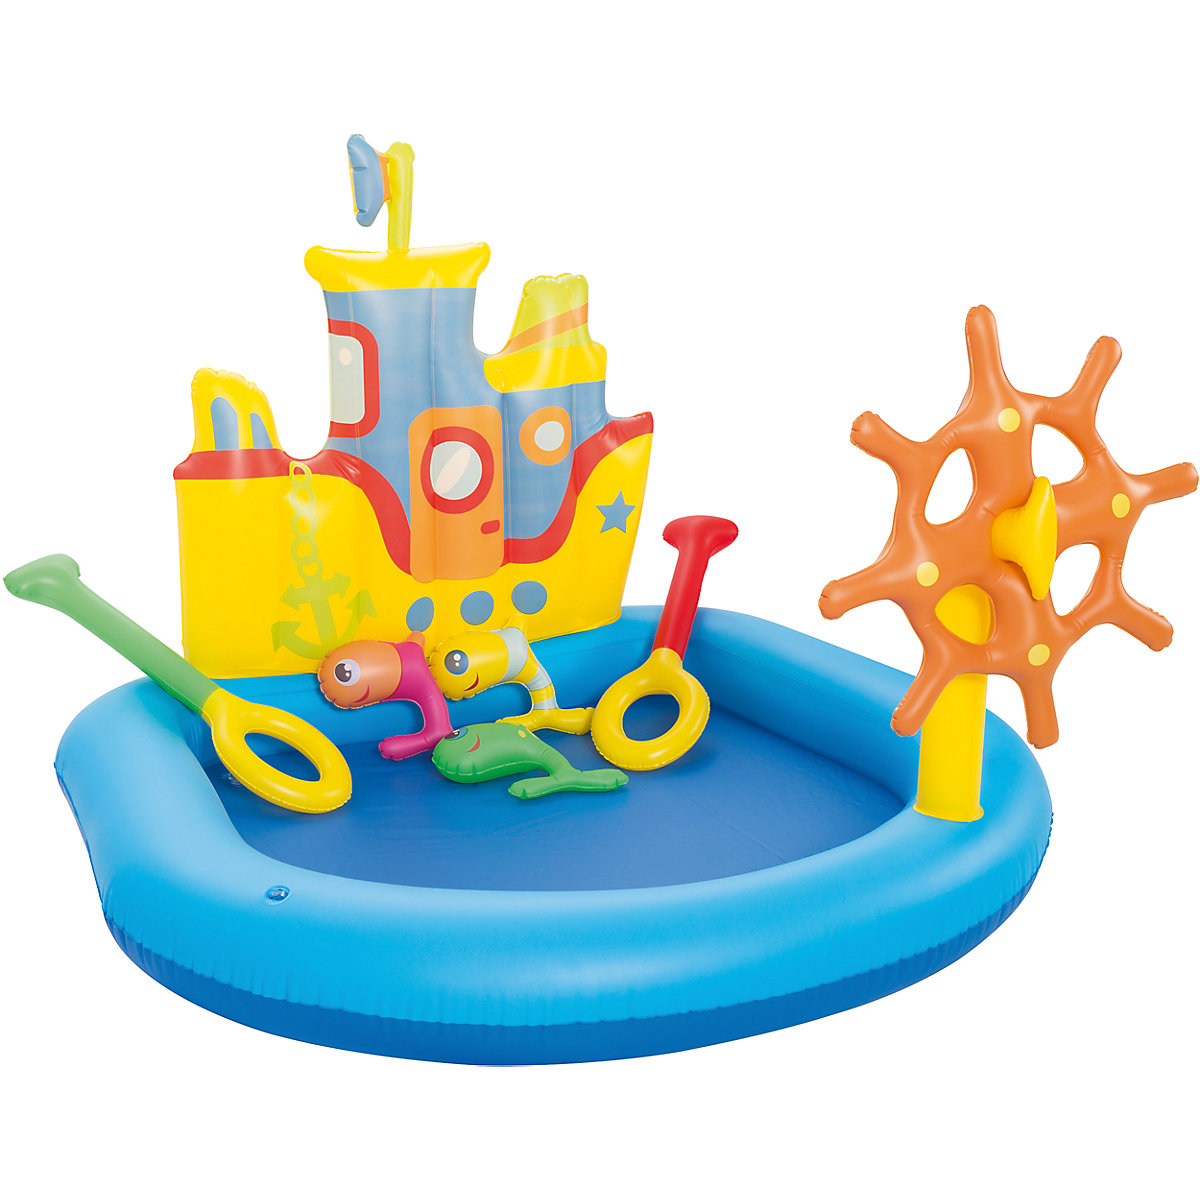 BESTWAY Swimming Pool 5486905 inflatable pools Accessories Activity & Gear tub Kids Baby for children large adult swimming pool children swimming pools different size pvc pool inflate swimming tools